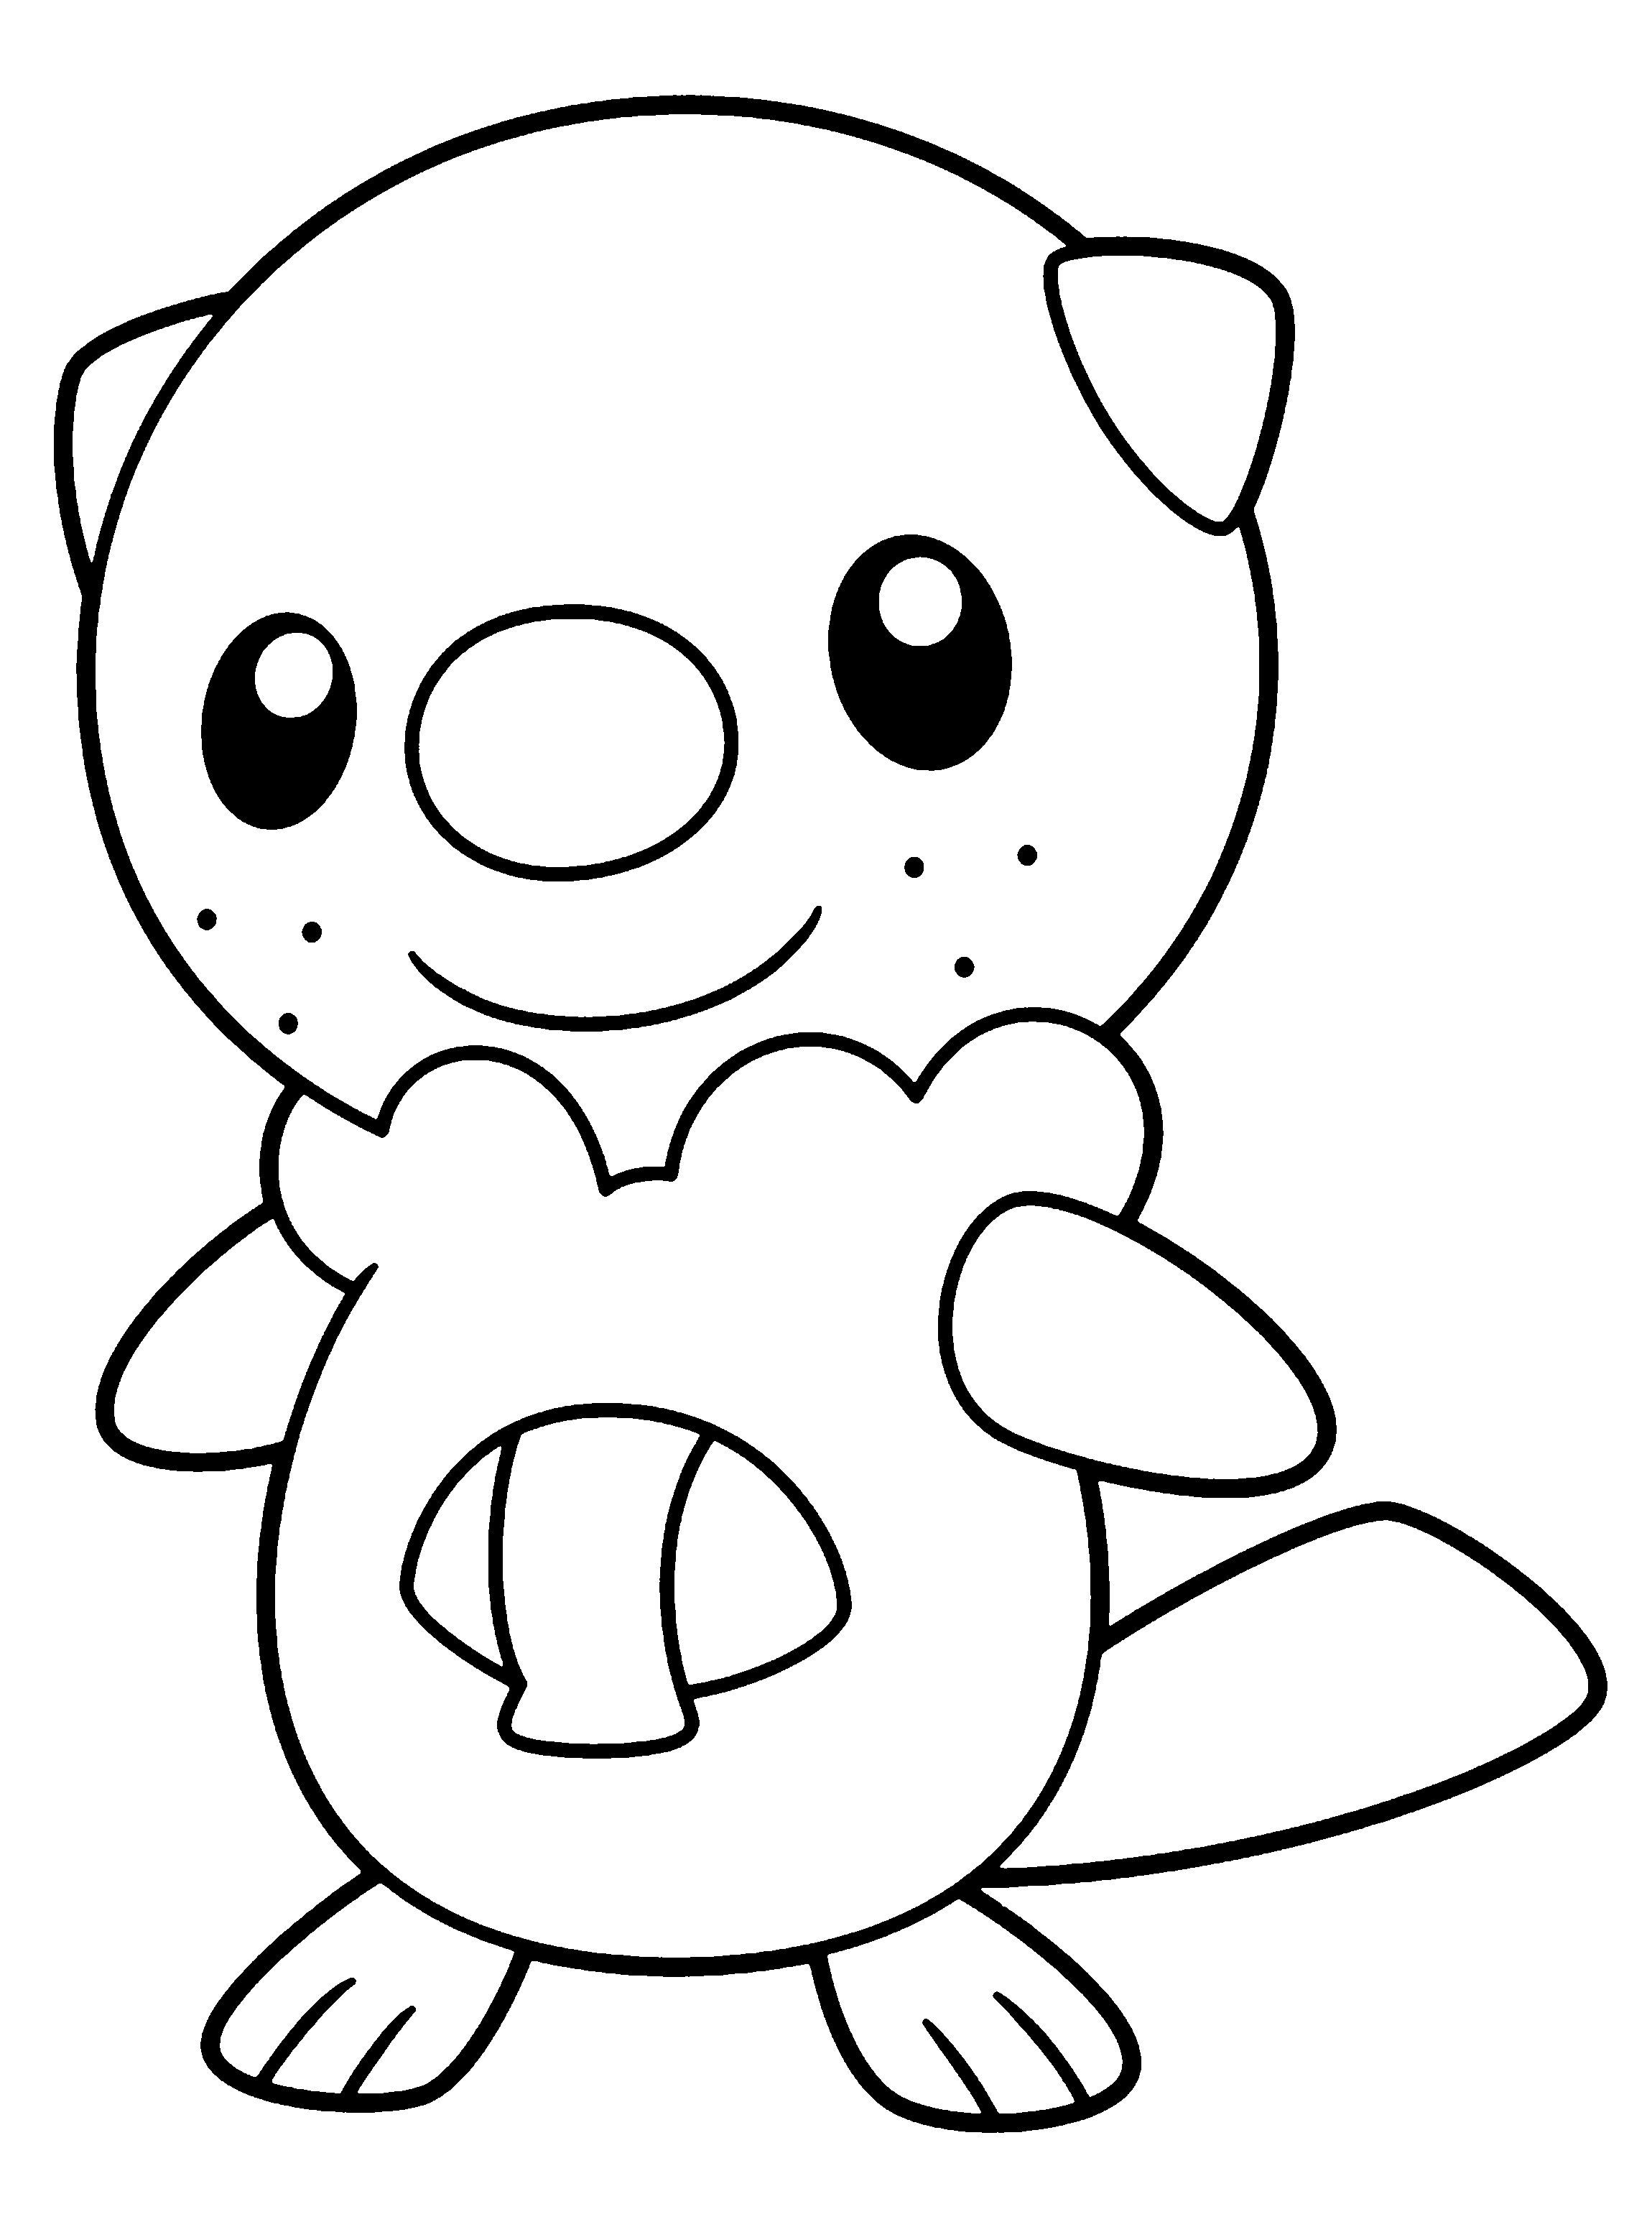 colouring pages of pokemon black and white pokemon black and white coloring pages google search colouring pages black pokemon white of and